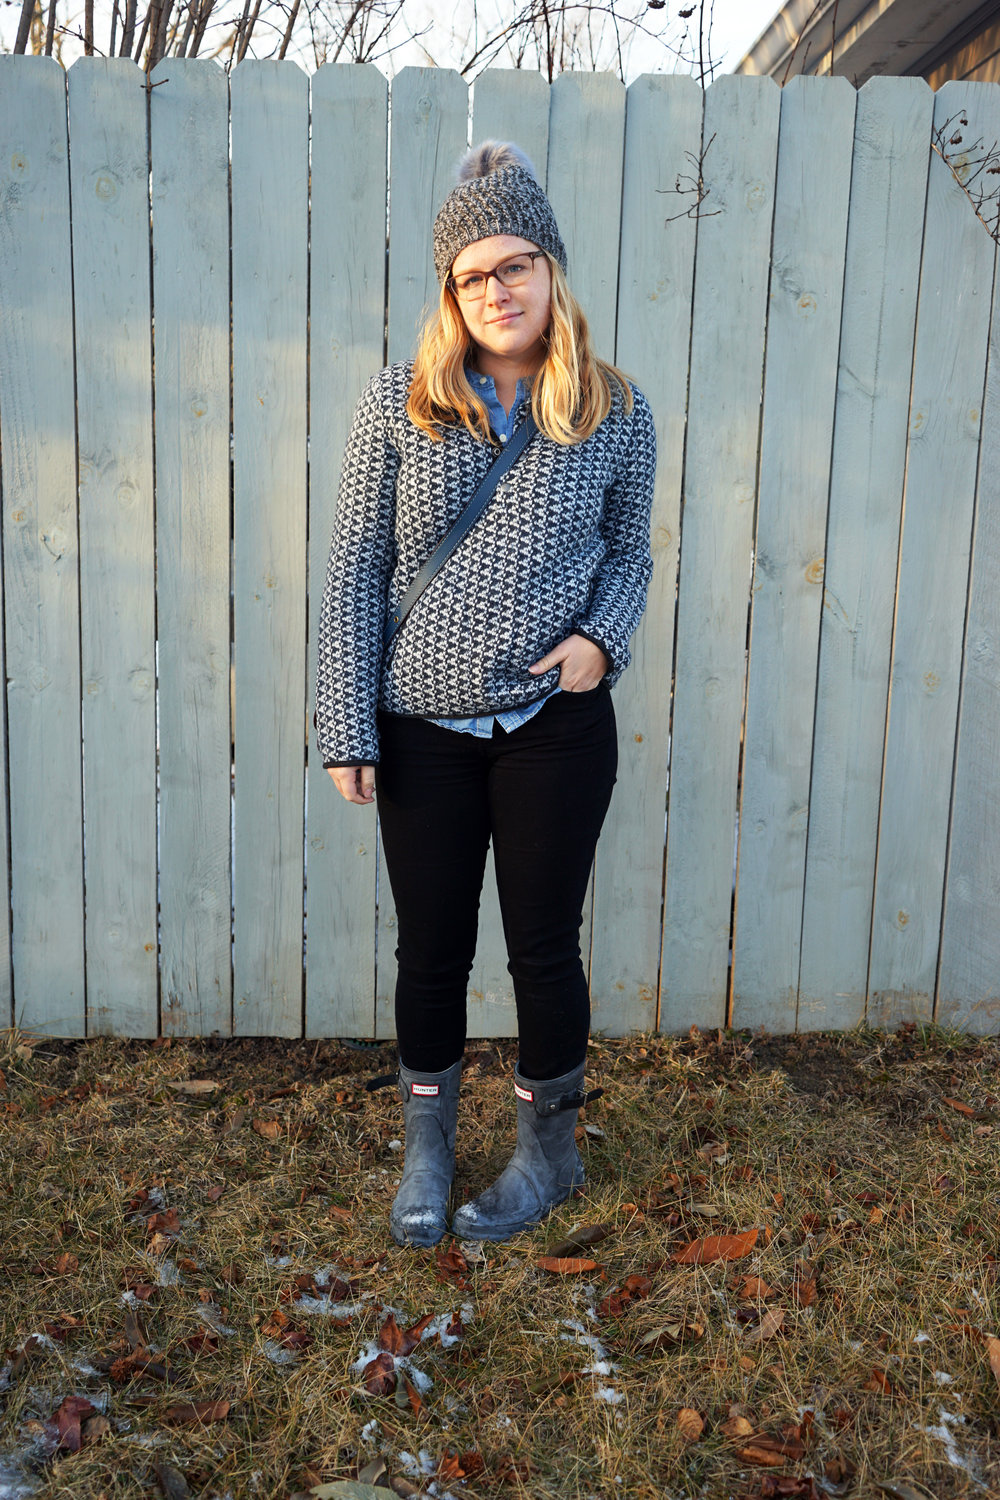 Maggie a la Mode - Madewell Harmonica Pullover, Madewell Perfect Chambray Sunday Shirt, Free People Powder River Pom Beanie, Hunter Original Short Boot, Coach Saddle Bag 23